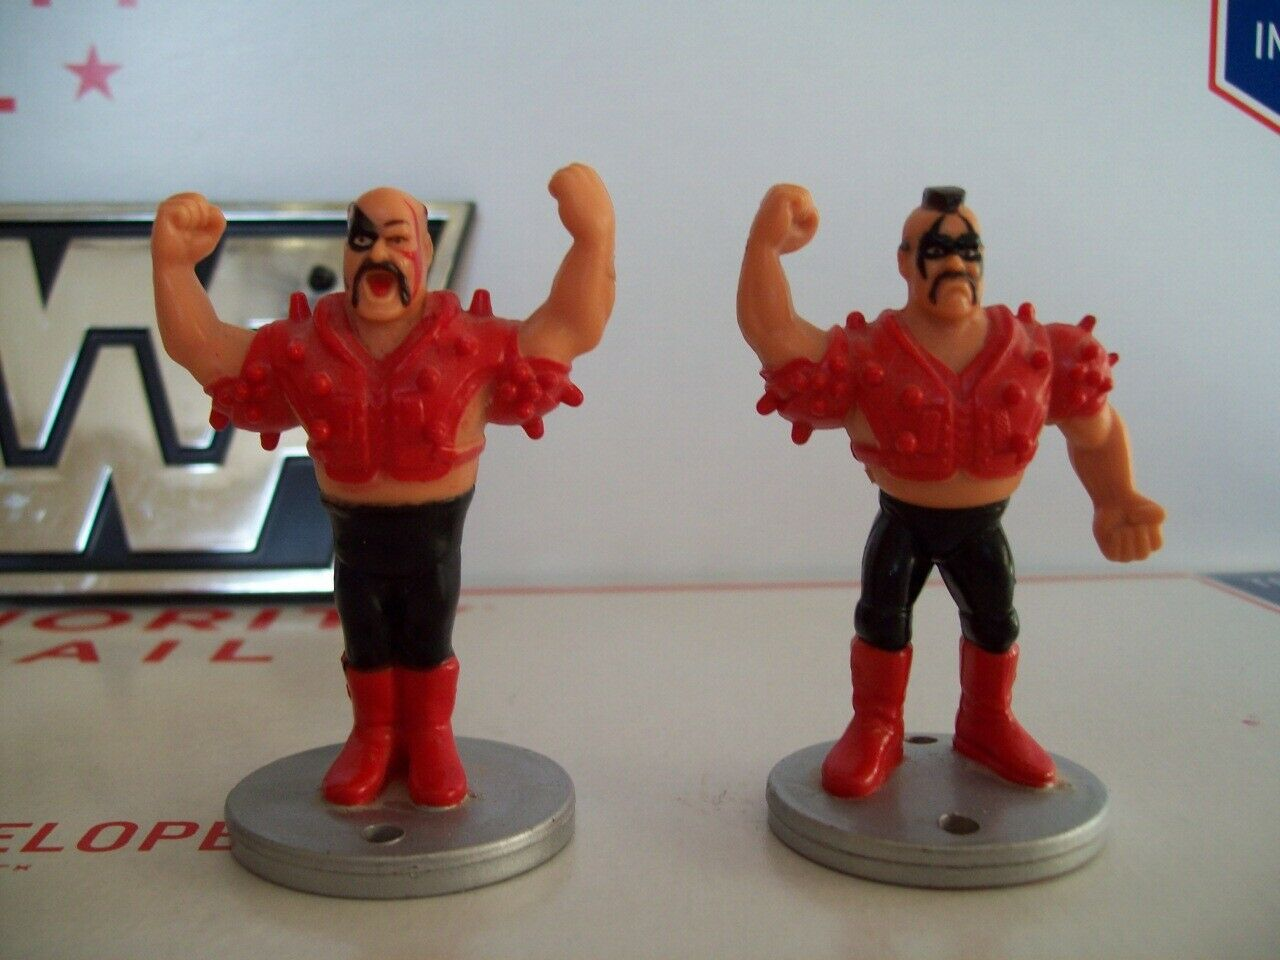 RARE HASBRO WWF MINI FIGURE ROAD WARRIORS LOD  WWE WcW ECW Pro Wrestling NWO nwa